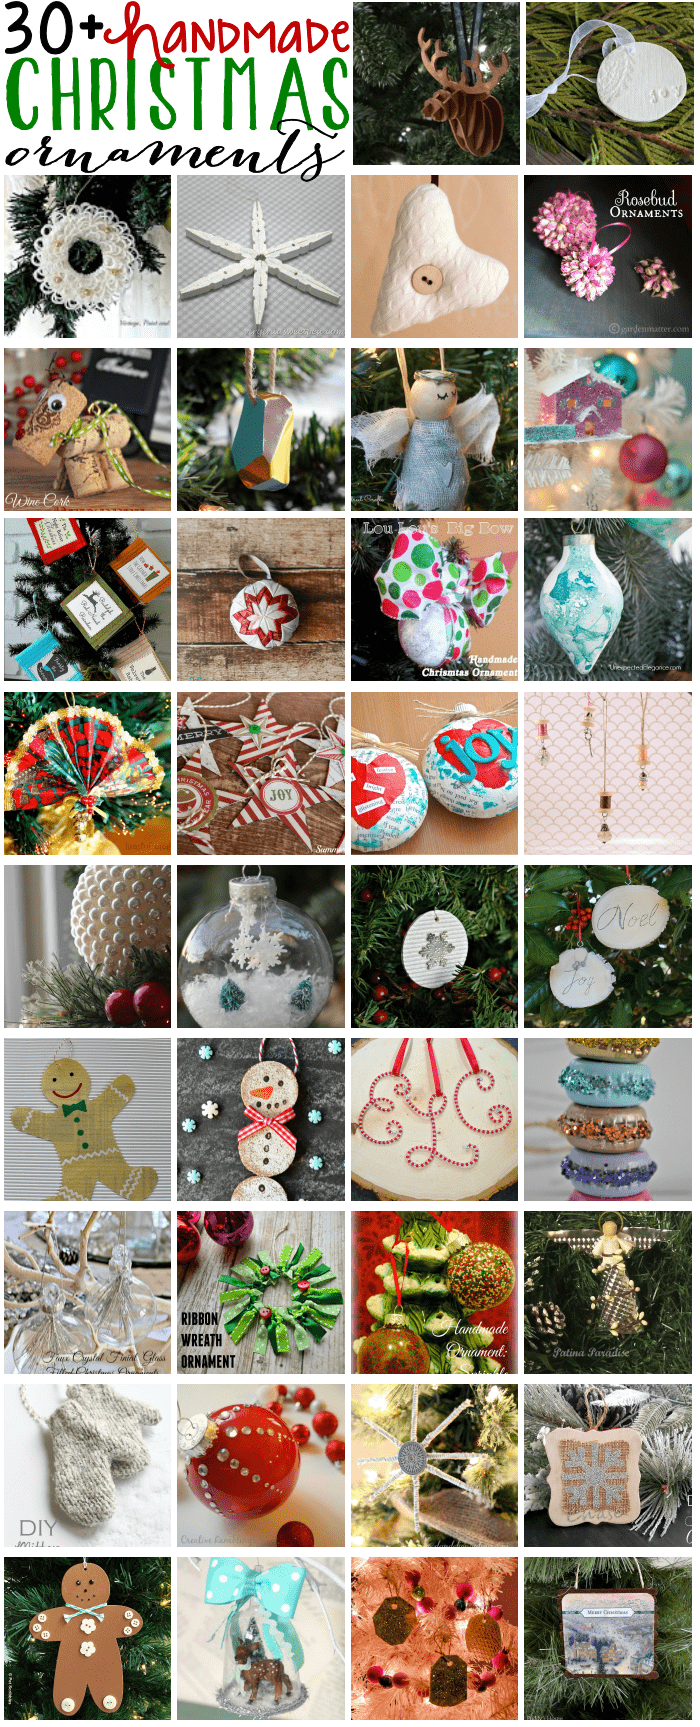 Handmade Christmas Ornaments Blog Hop